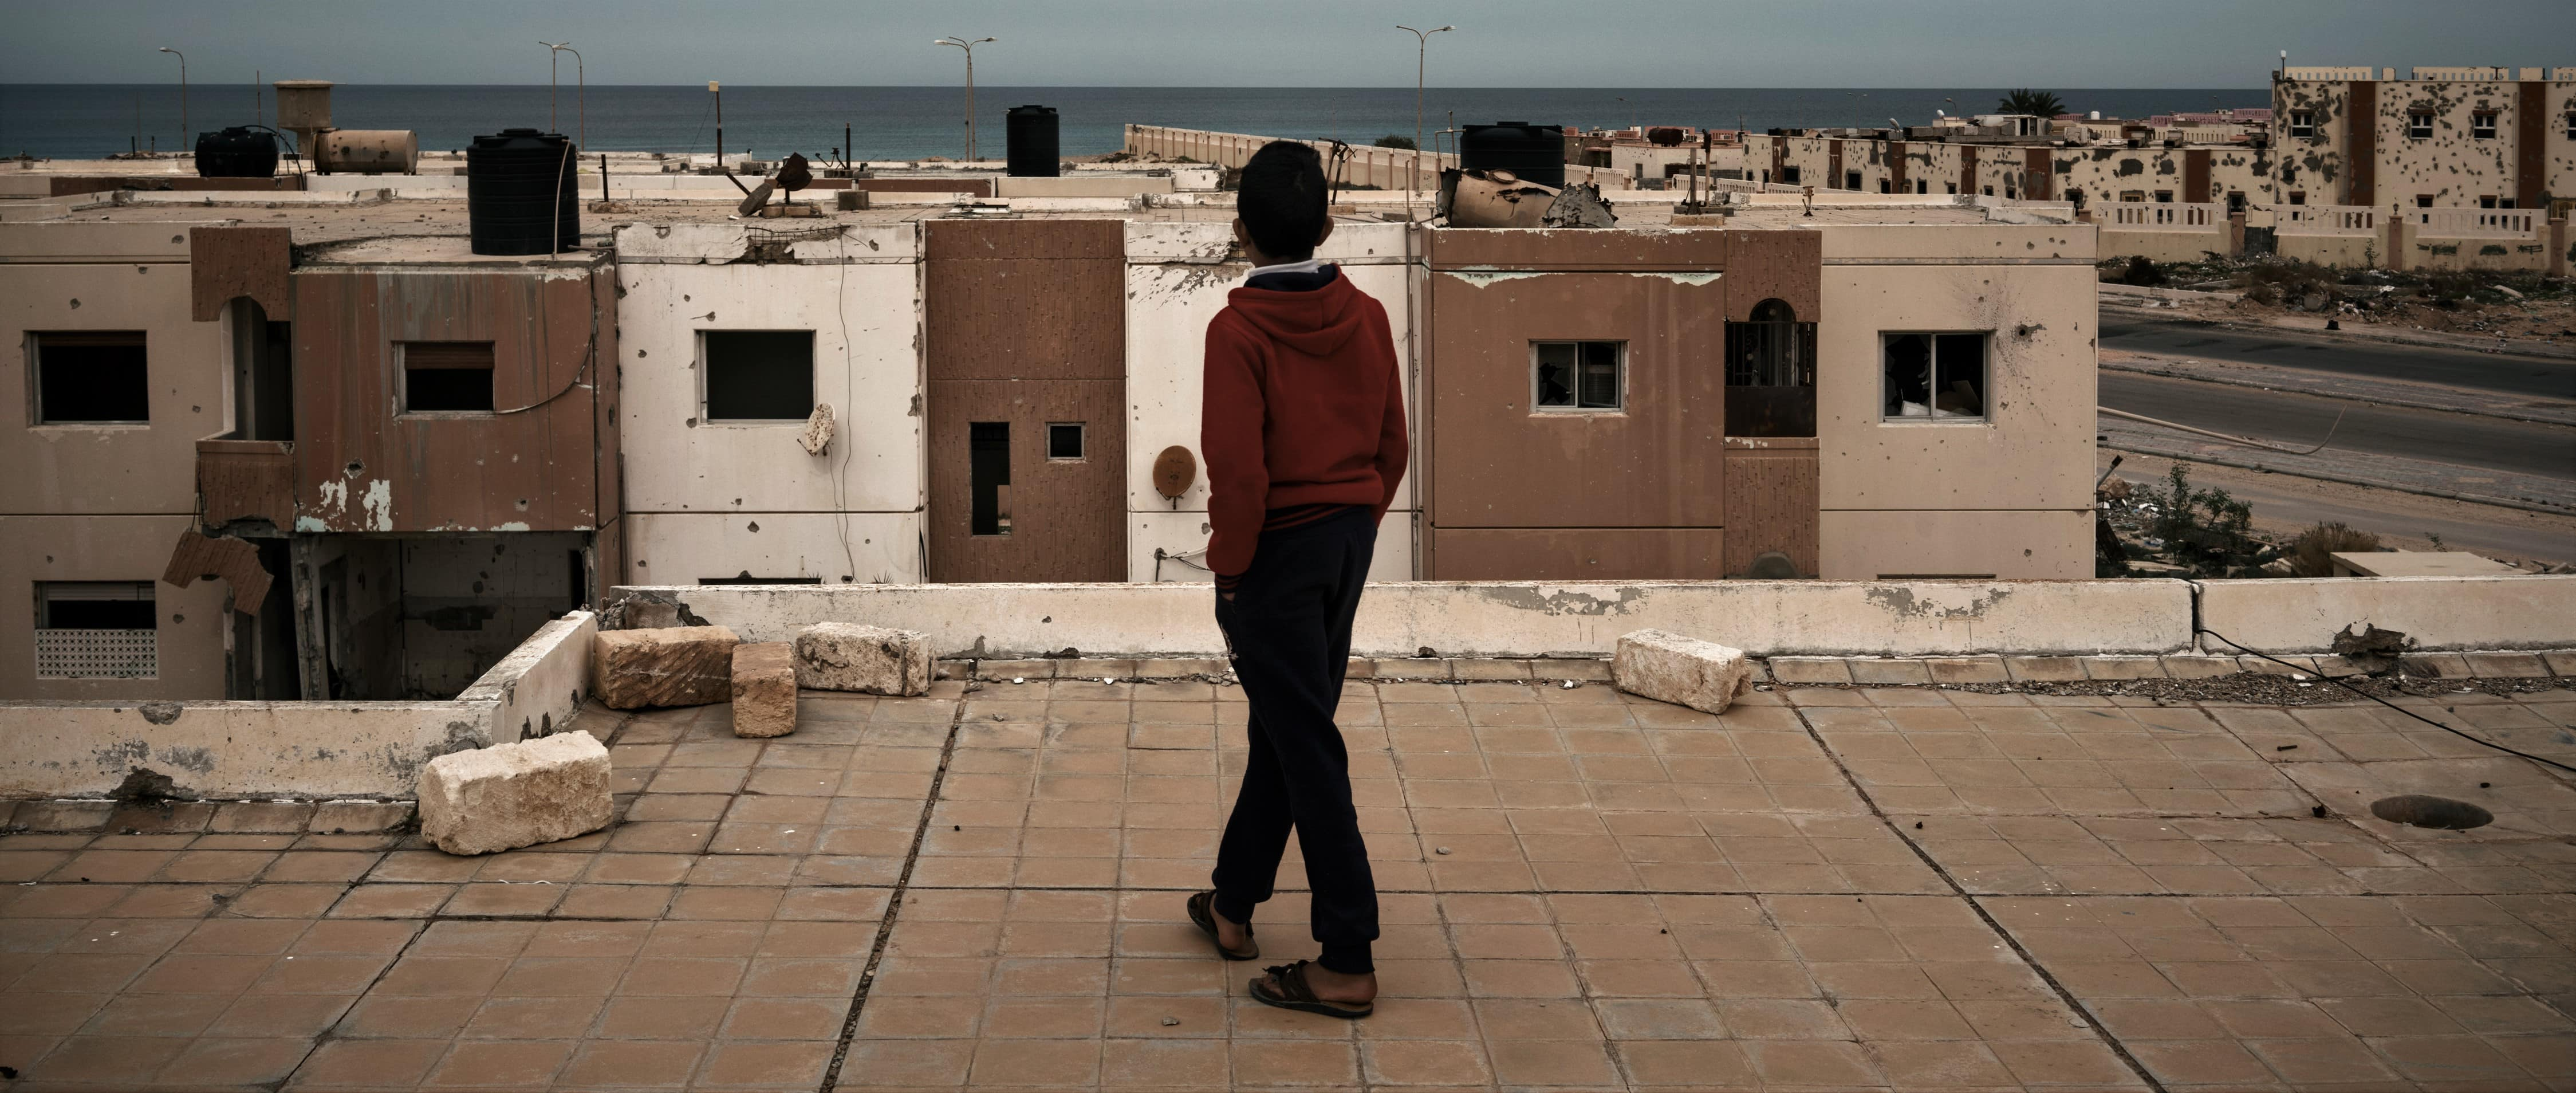 A boy walks along a building's roof in Sirte, Libya, December 2017 (Photo: Washington Post/Getty Images)